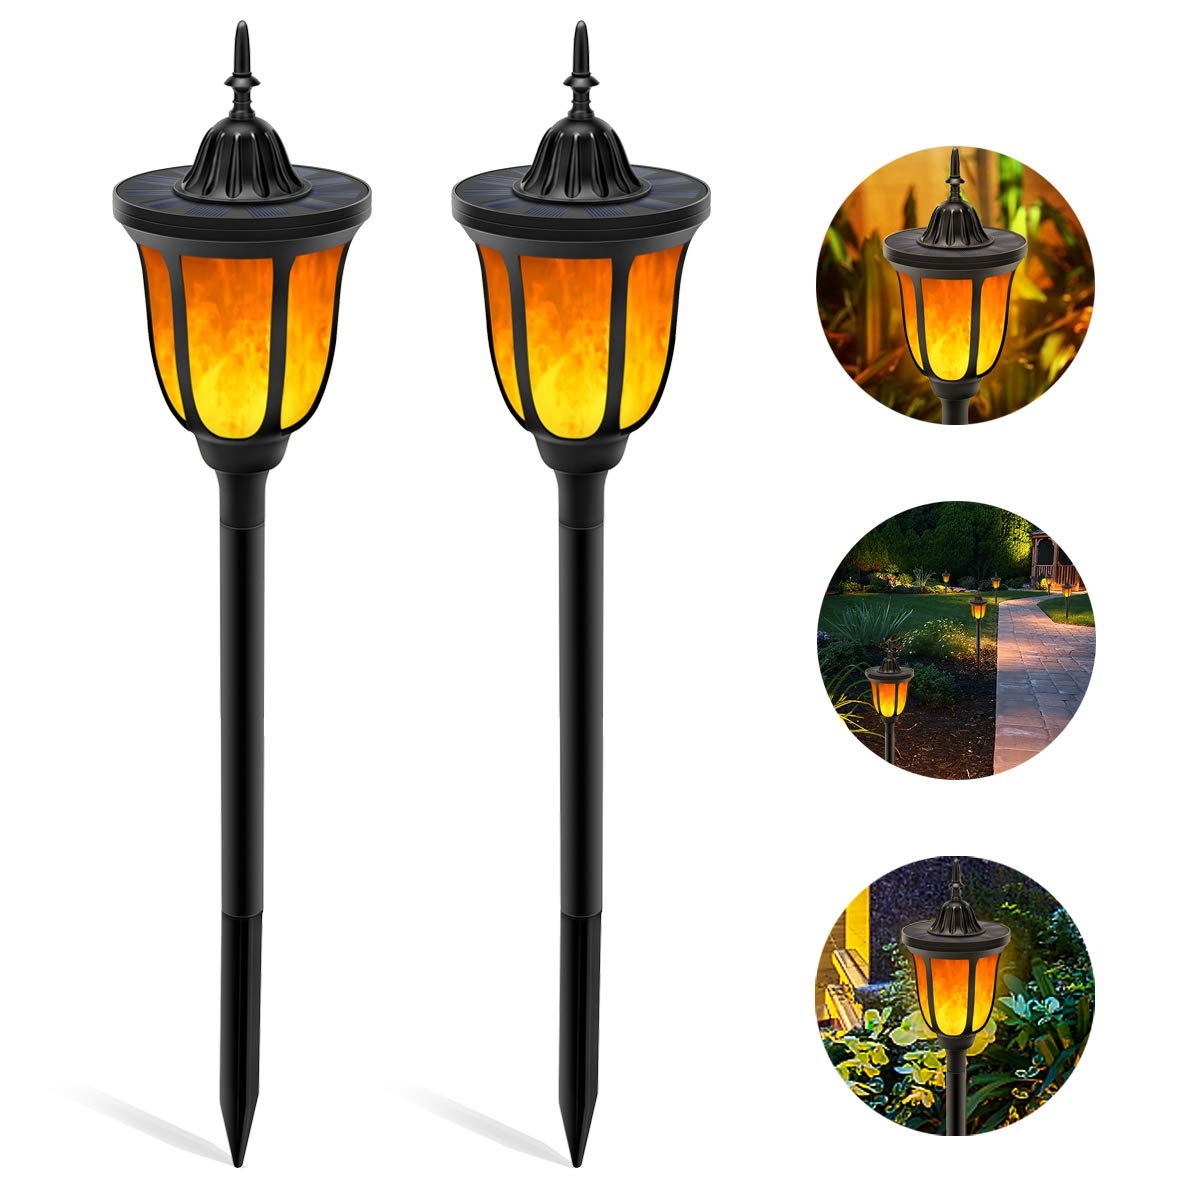 Solar Torch Lights Unique, ALOVECO Solar Flame Lights Outdoor Waterproof Flickering Flames Solar Garden Spotlights Landscape Decoration Lighting Auto On/Off Security Torch Light for Patio Driveway by ALOVECO